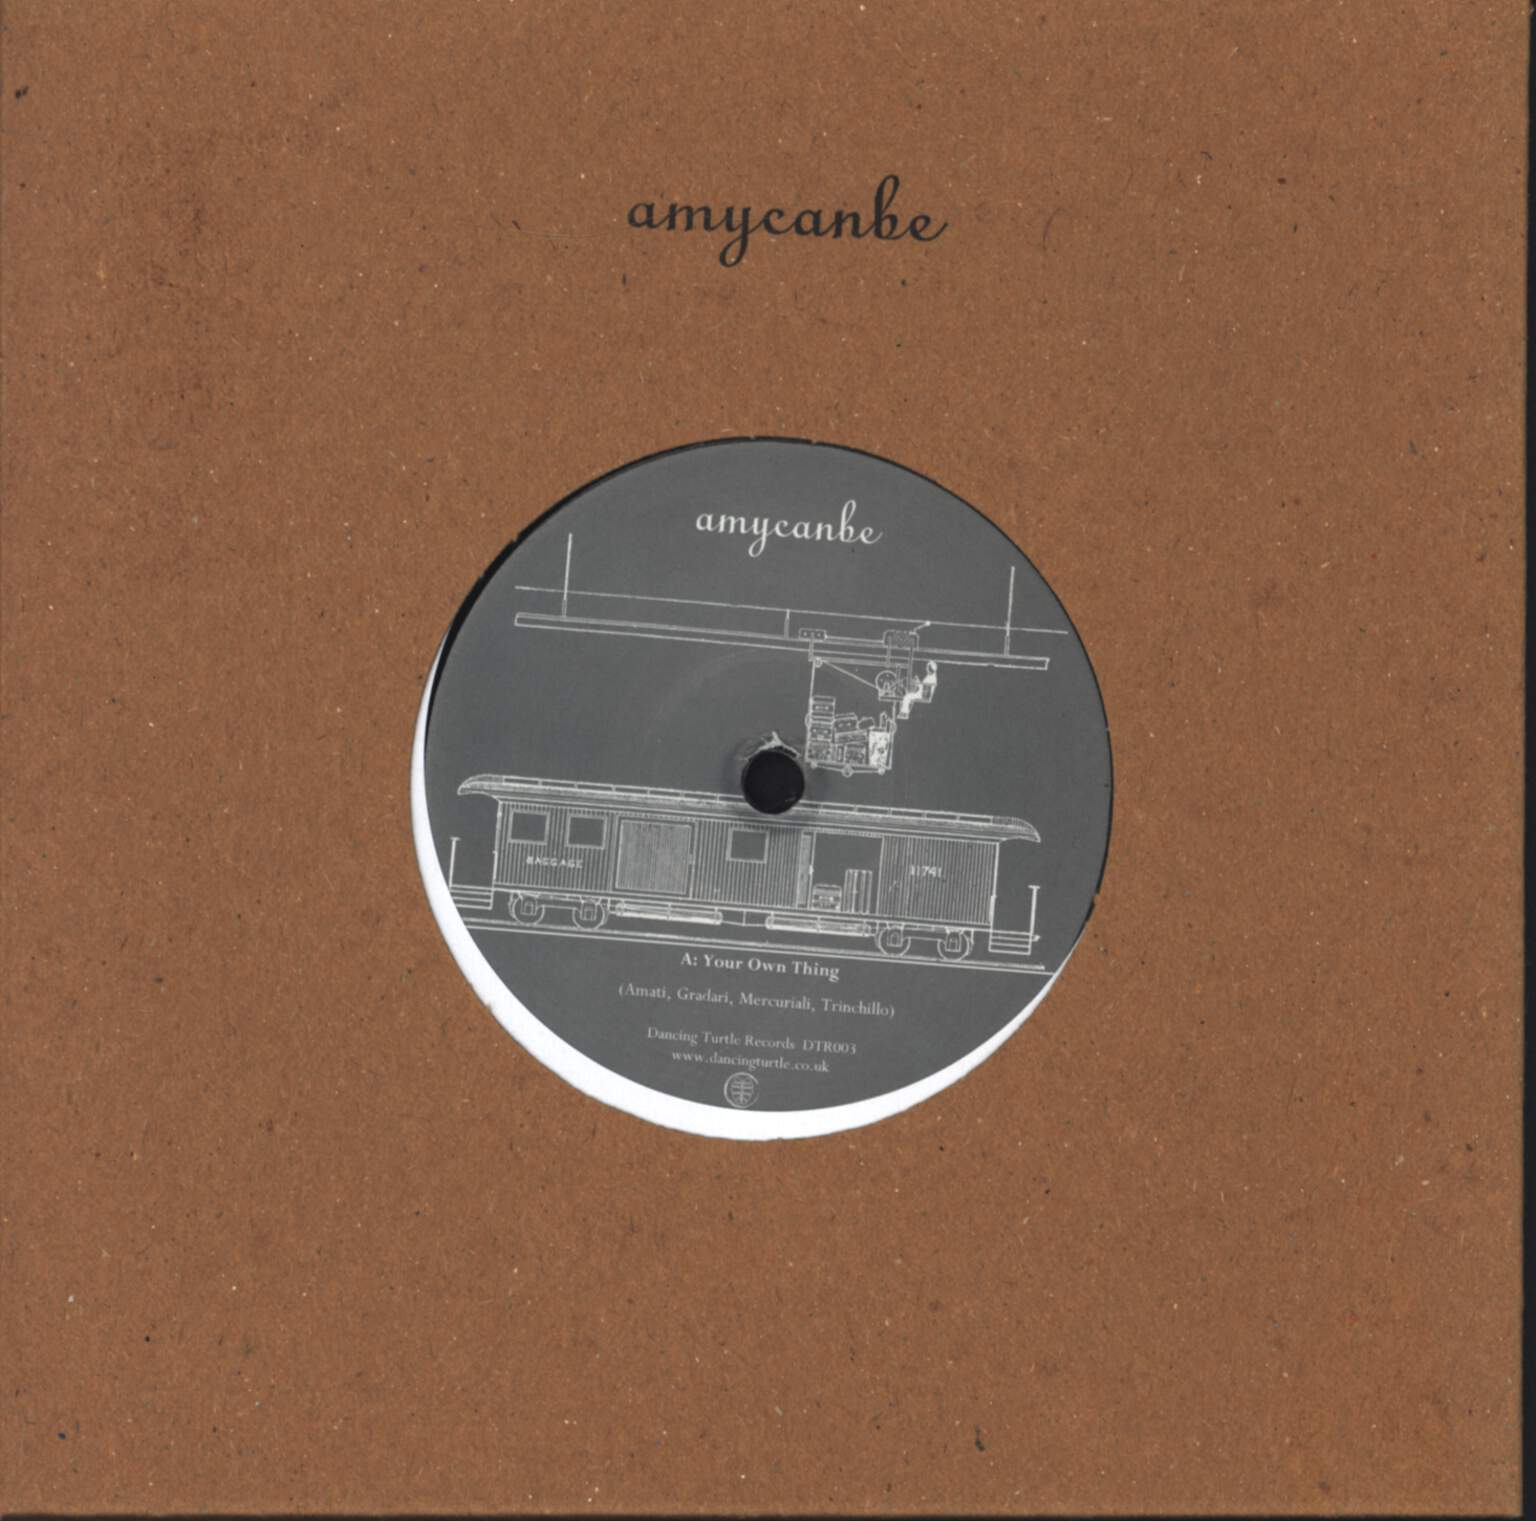 "Amycanbe: Your Own Thing, 7"" Single (Vinyl)"